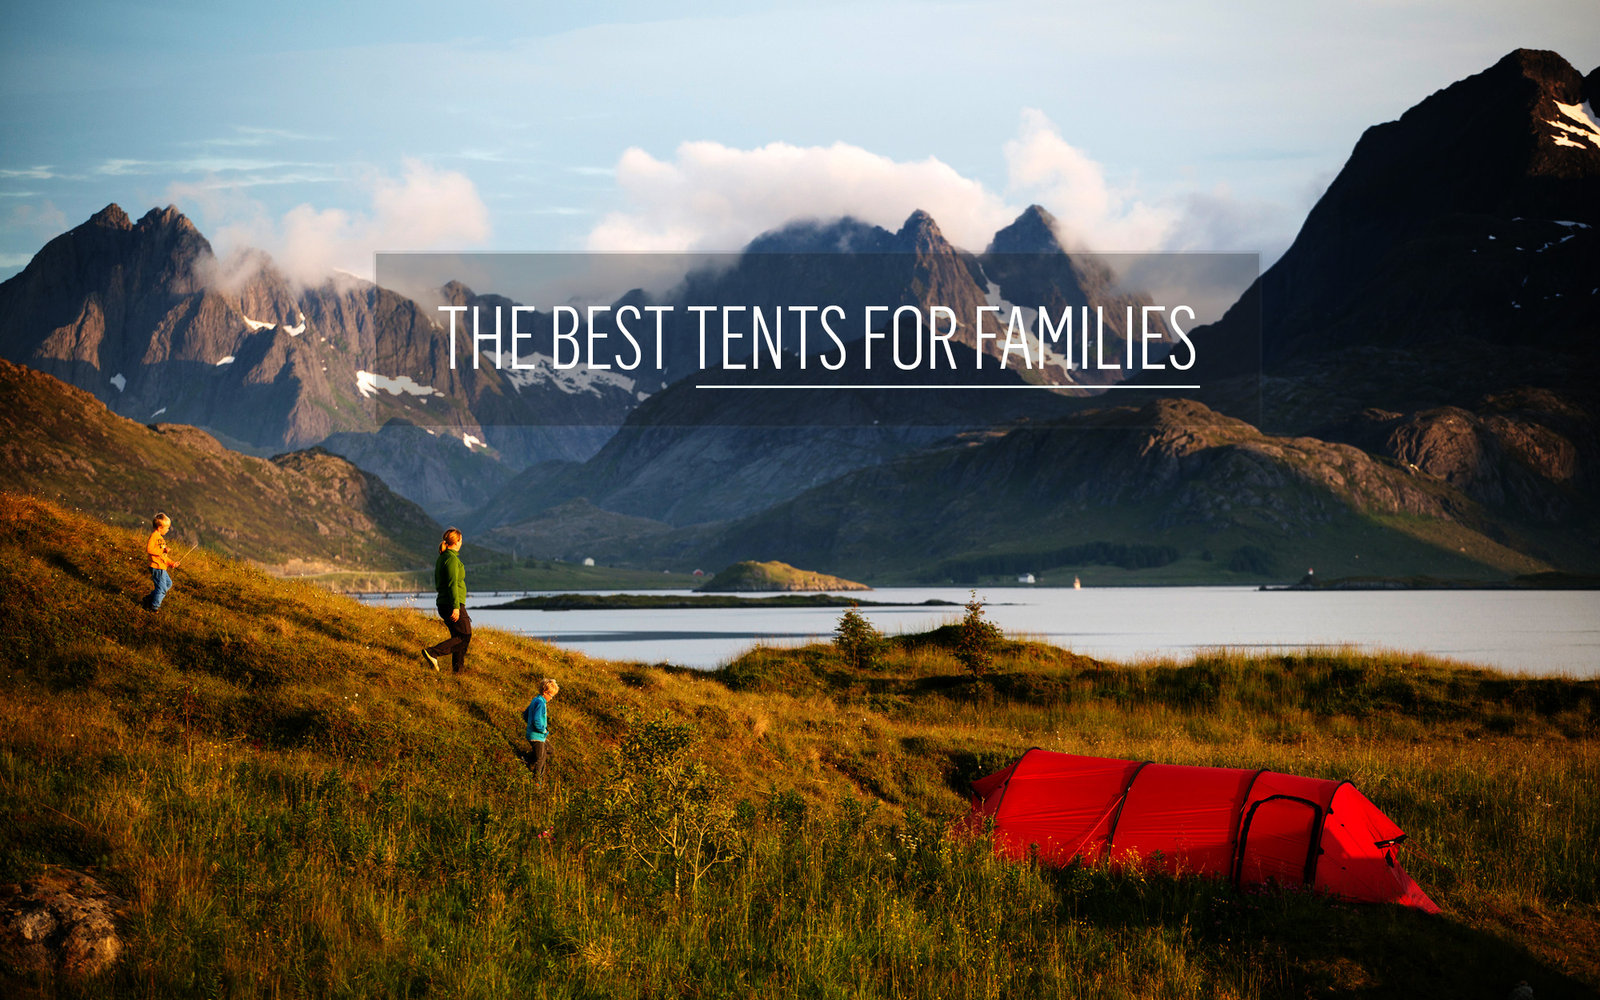 Family-Friendly Tents